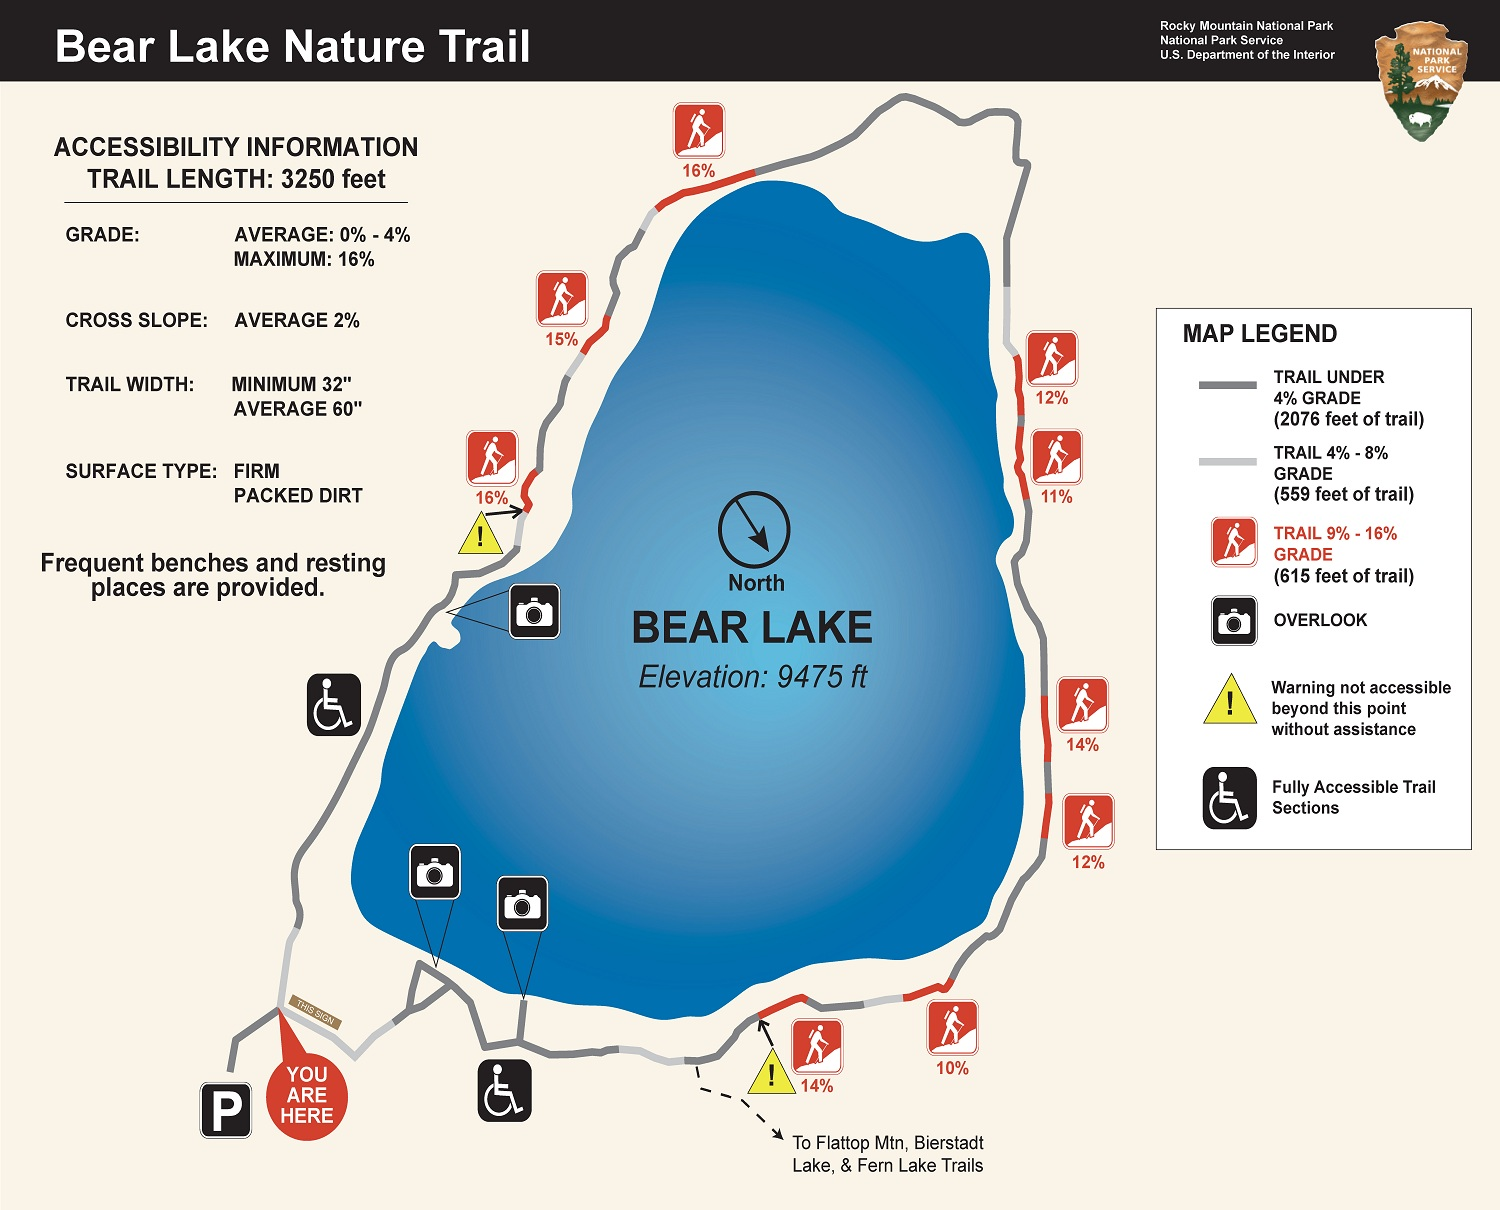 Bear Lake Nature Trail